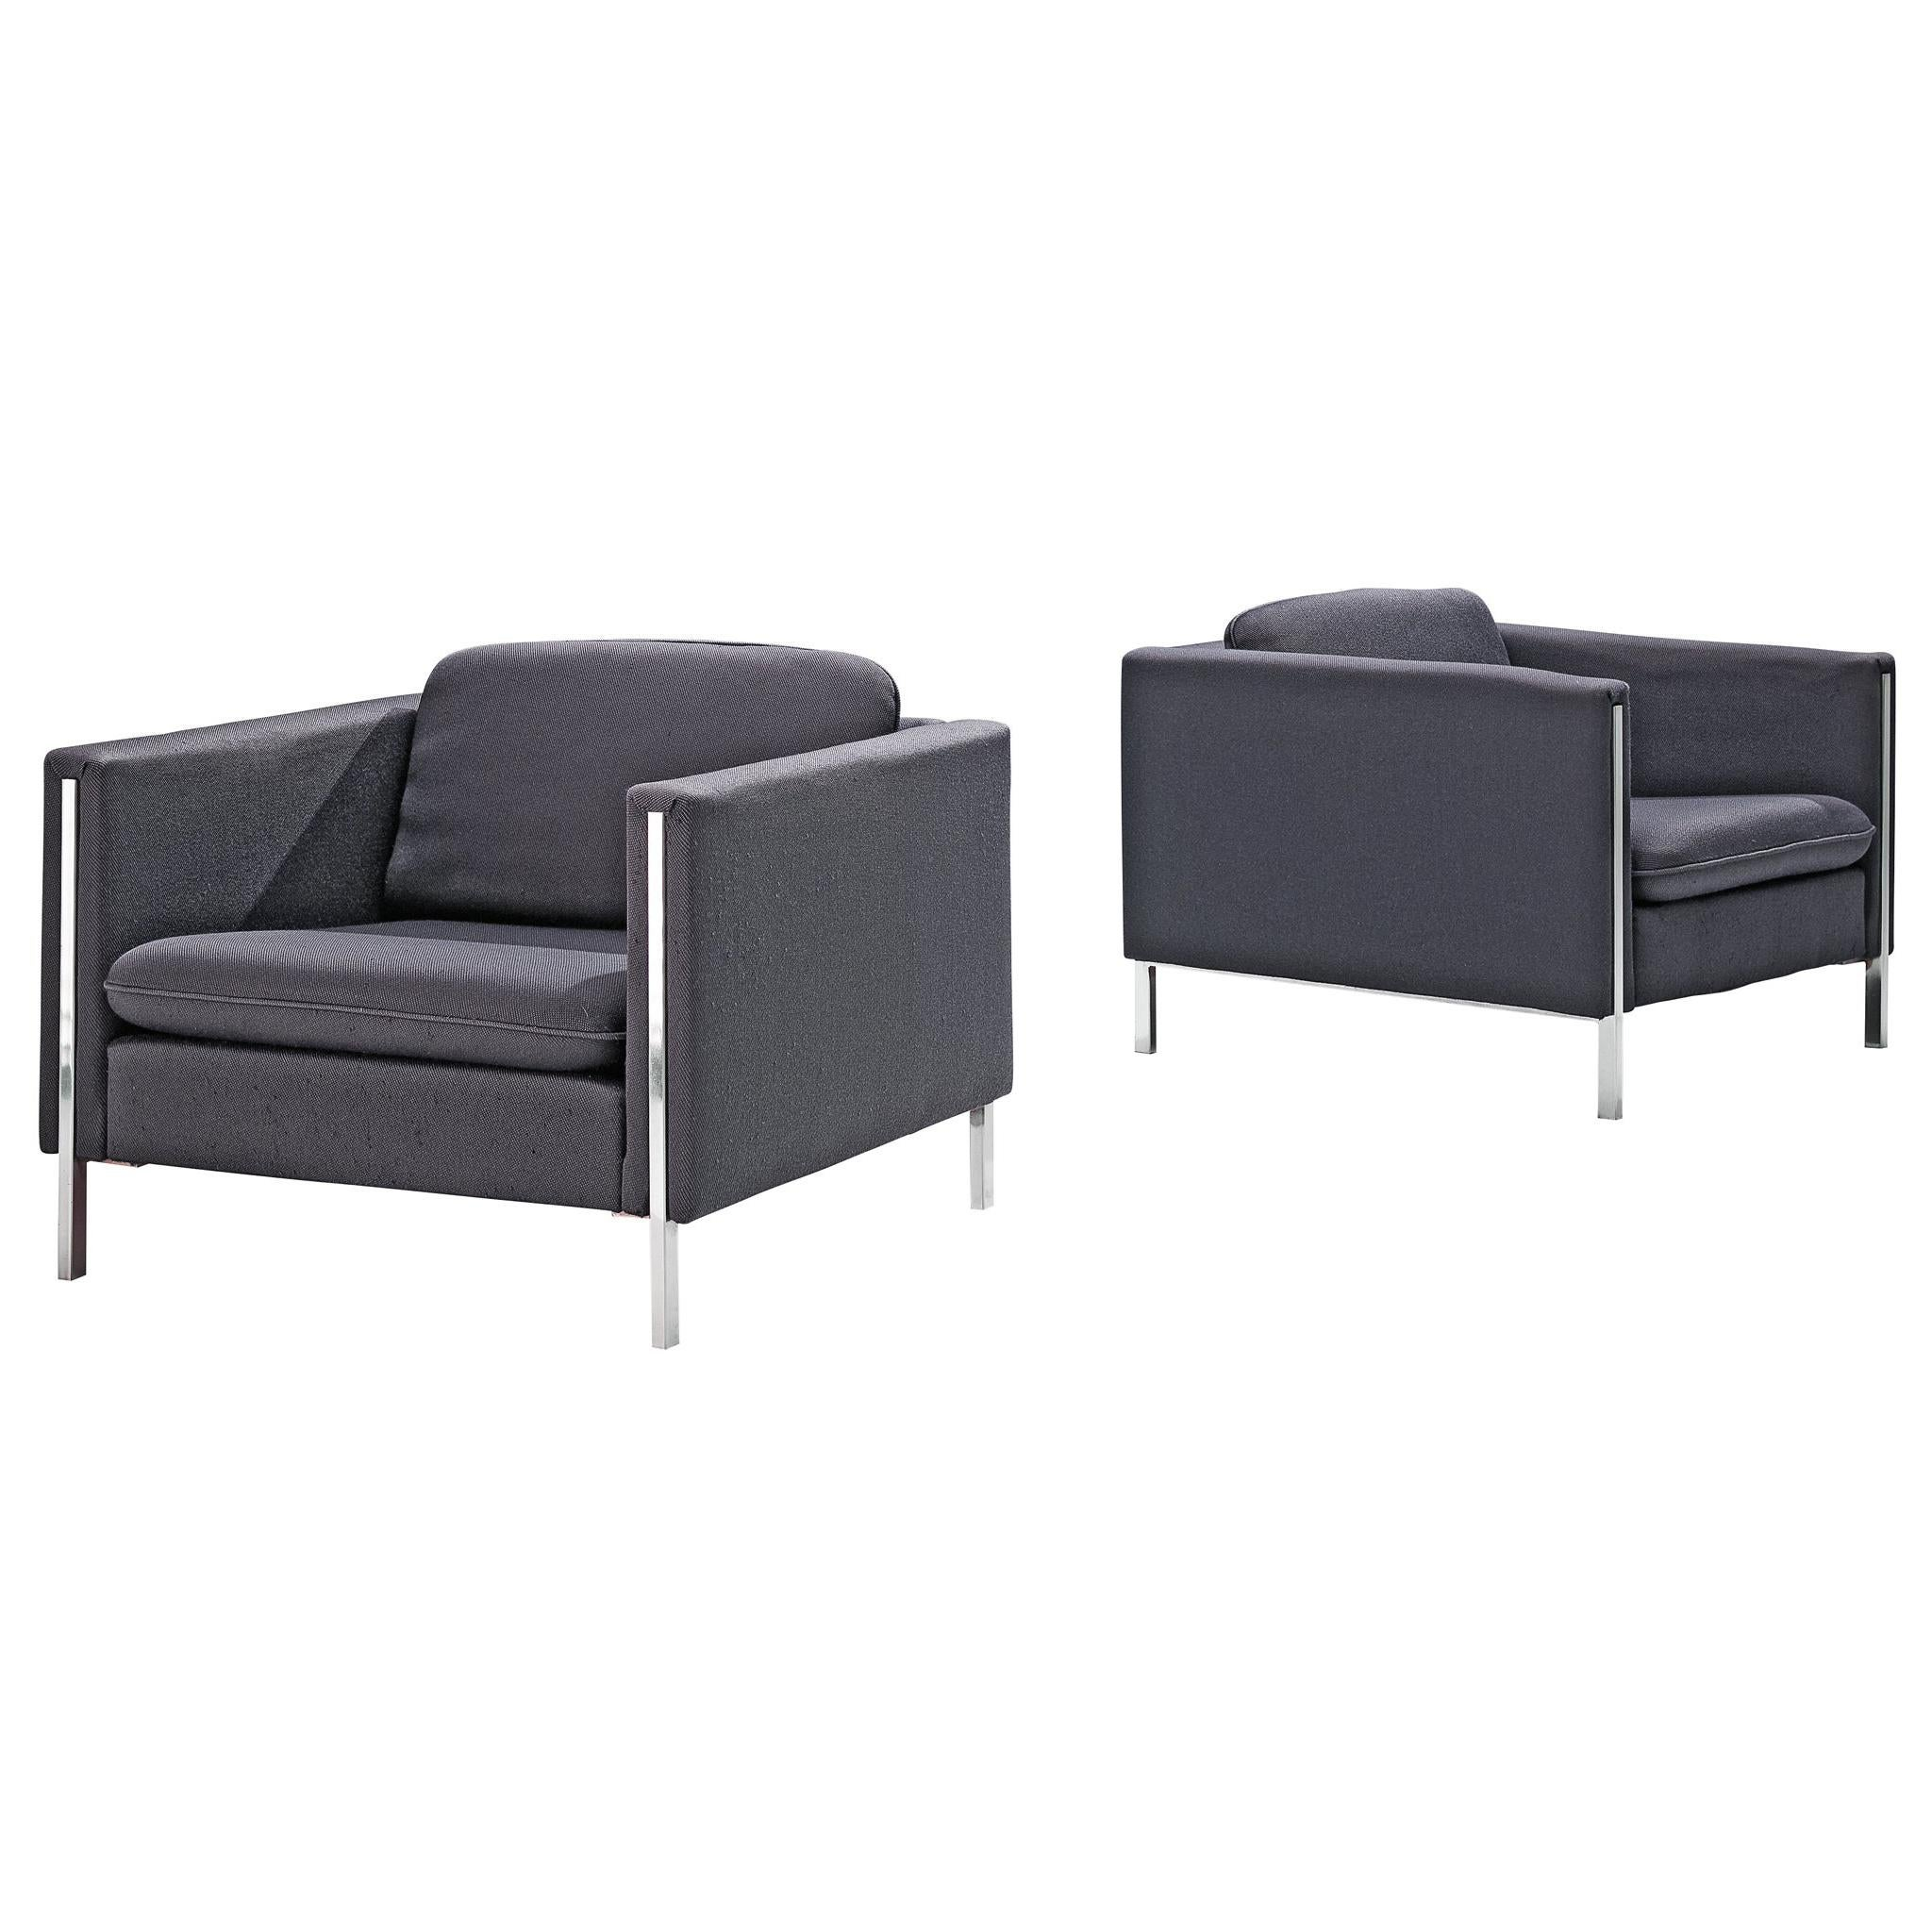 Pierre Paulin Pair of 442 Lounge Chairs for Artifort